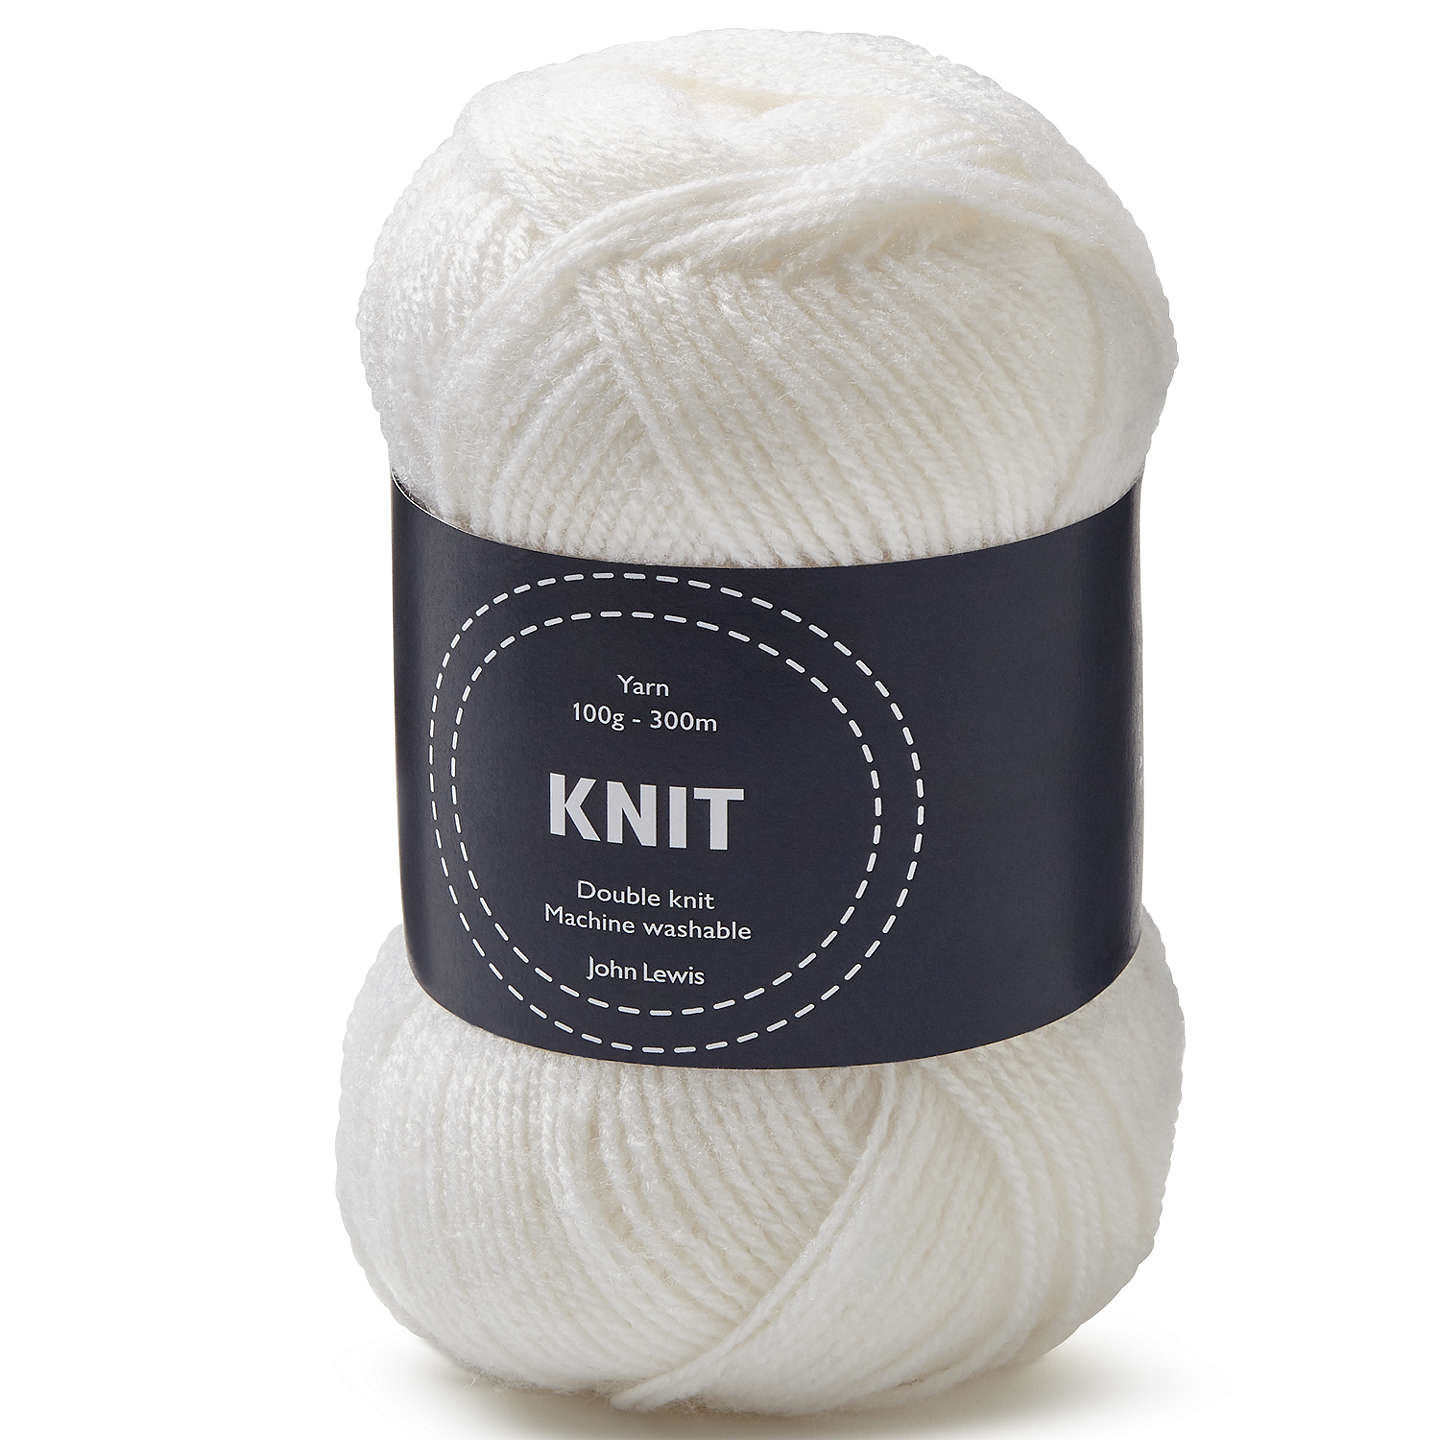 BuyJohn Lewis Acrylic DK Yarn, 100g, White Online at johnlewis.com